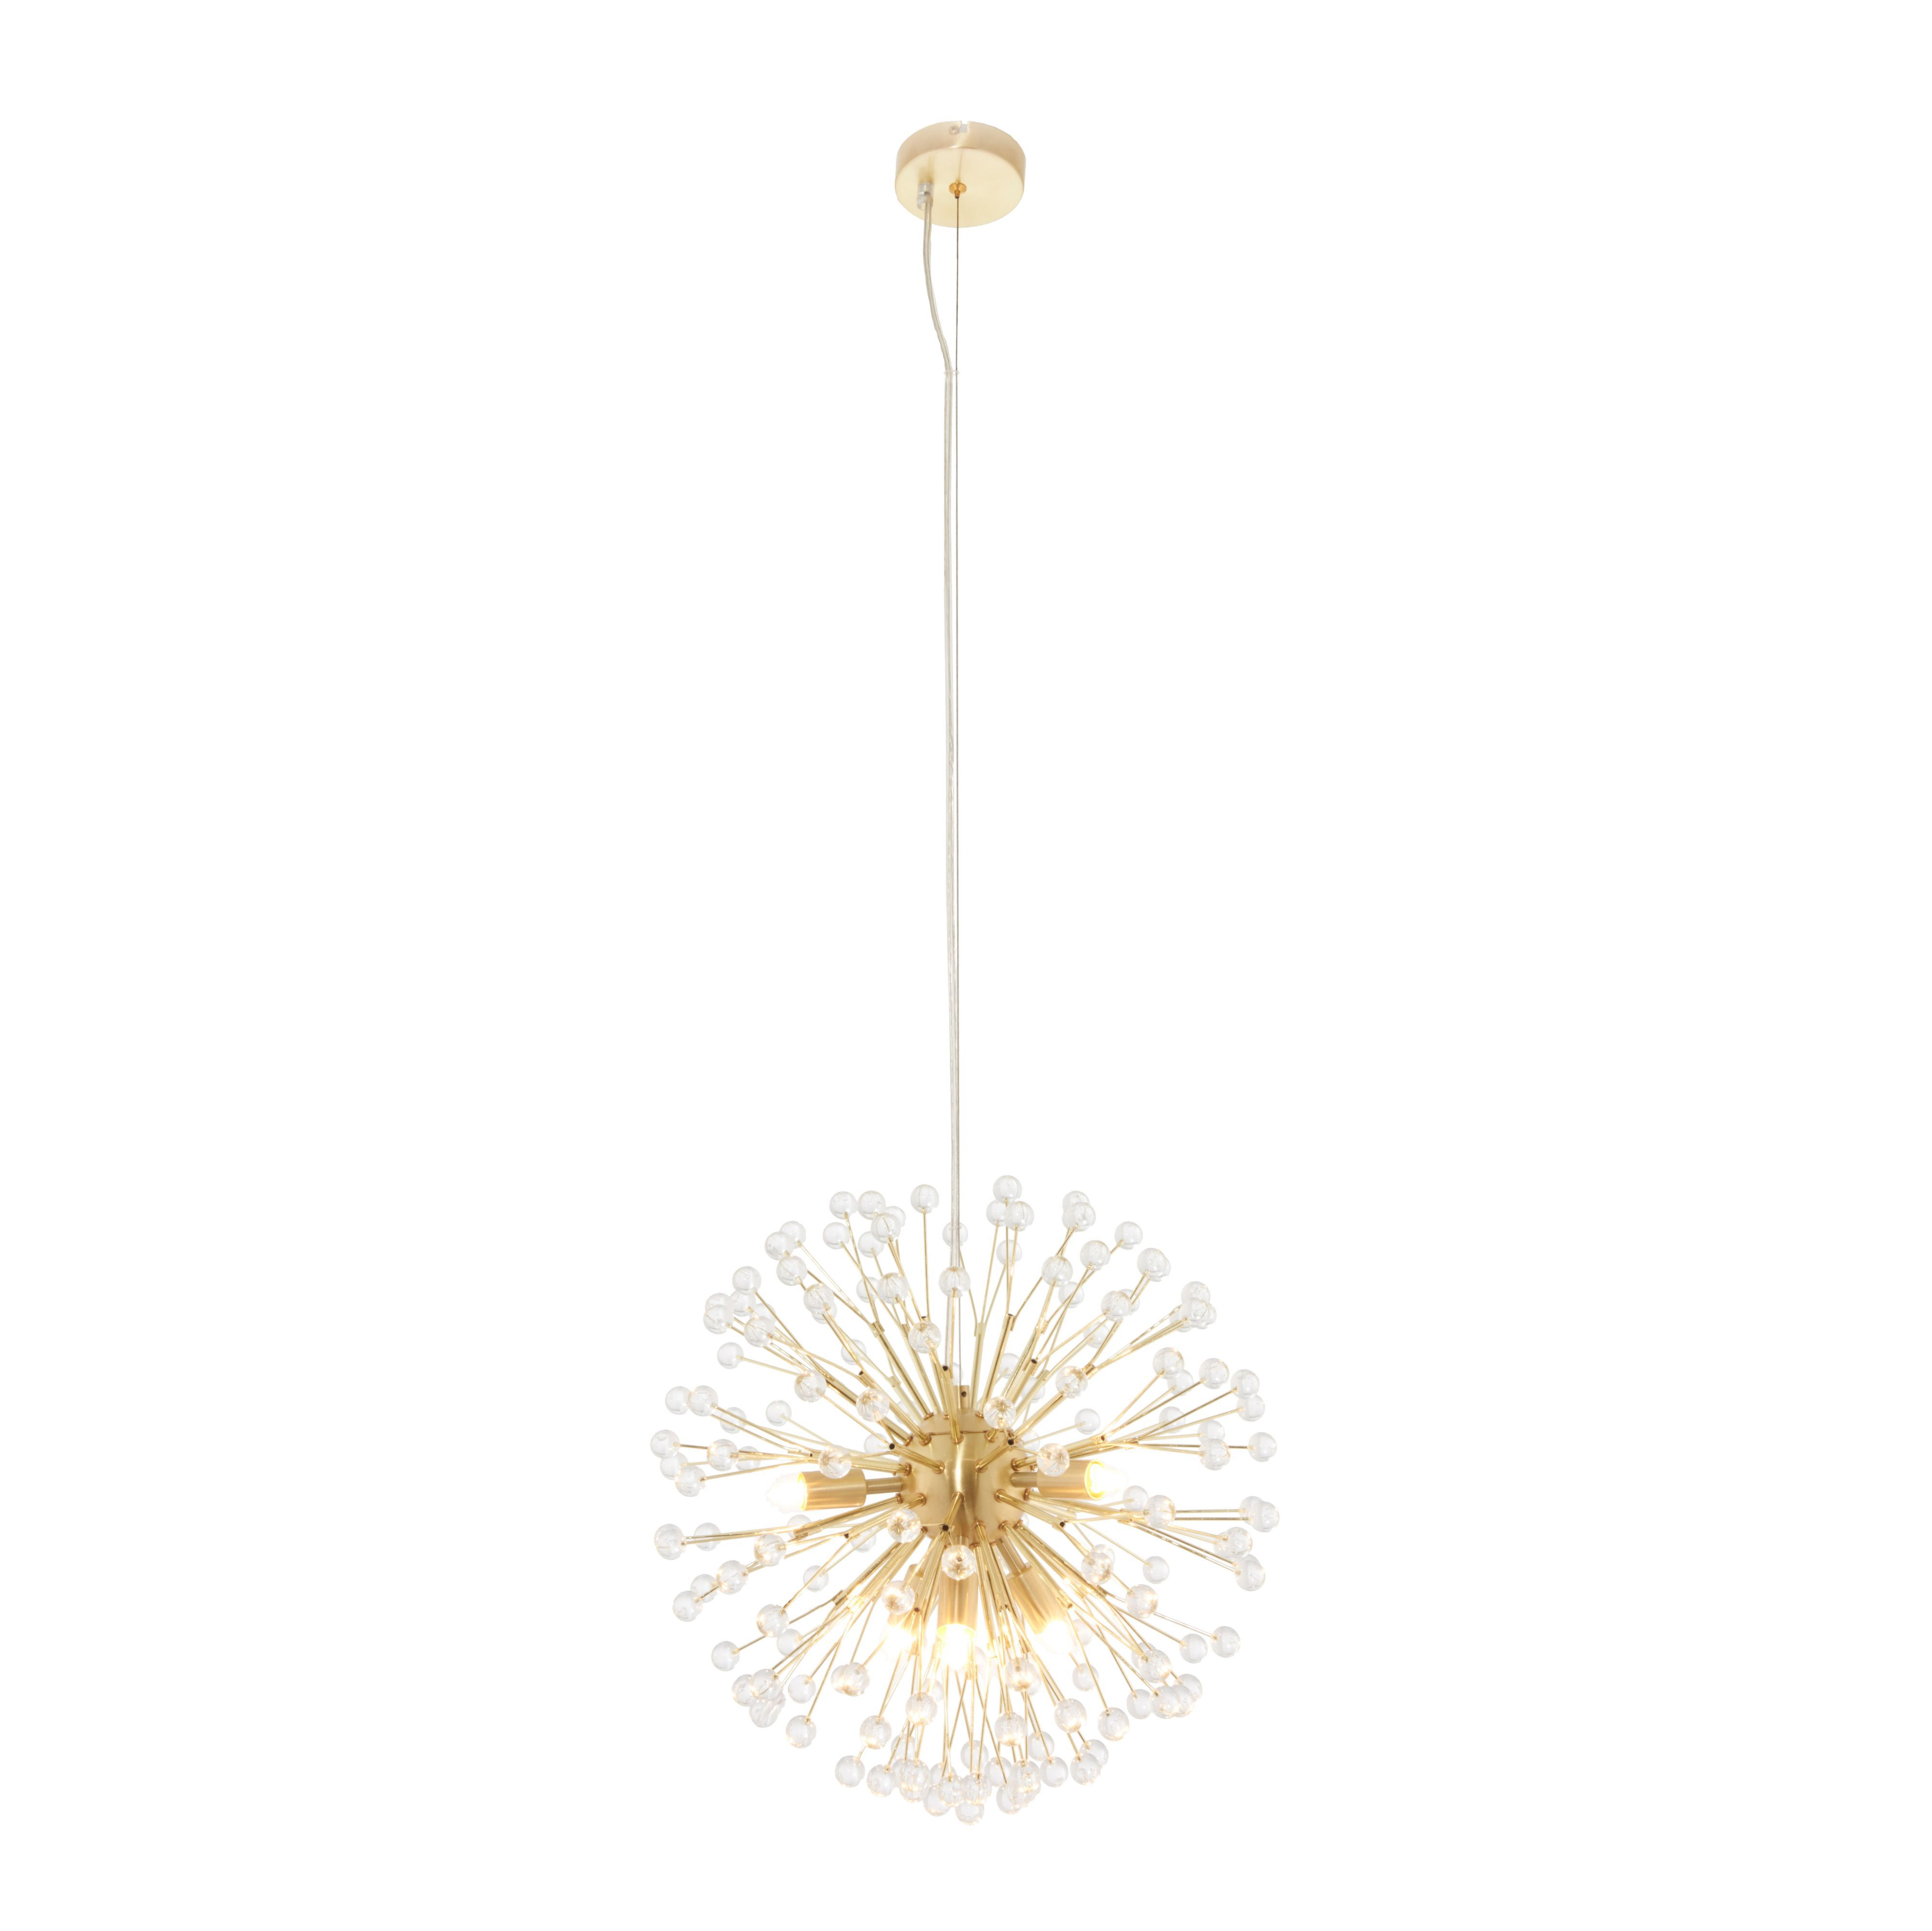 Toulouse Multi Arm Cluster Brushed Gold Effect 6 Lamp